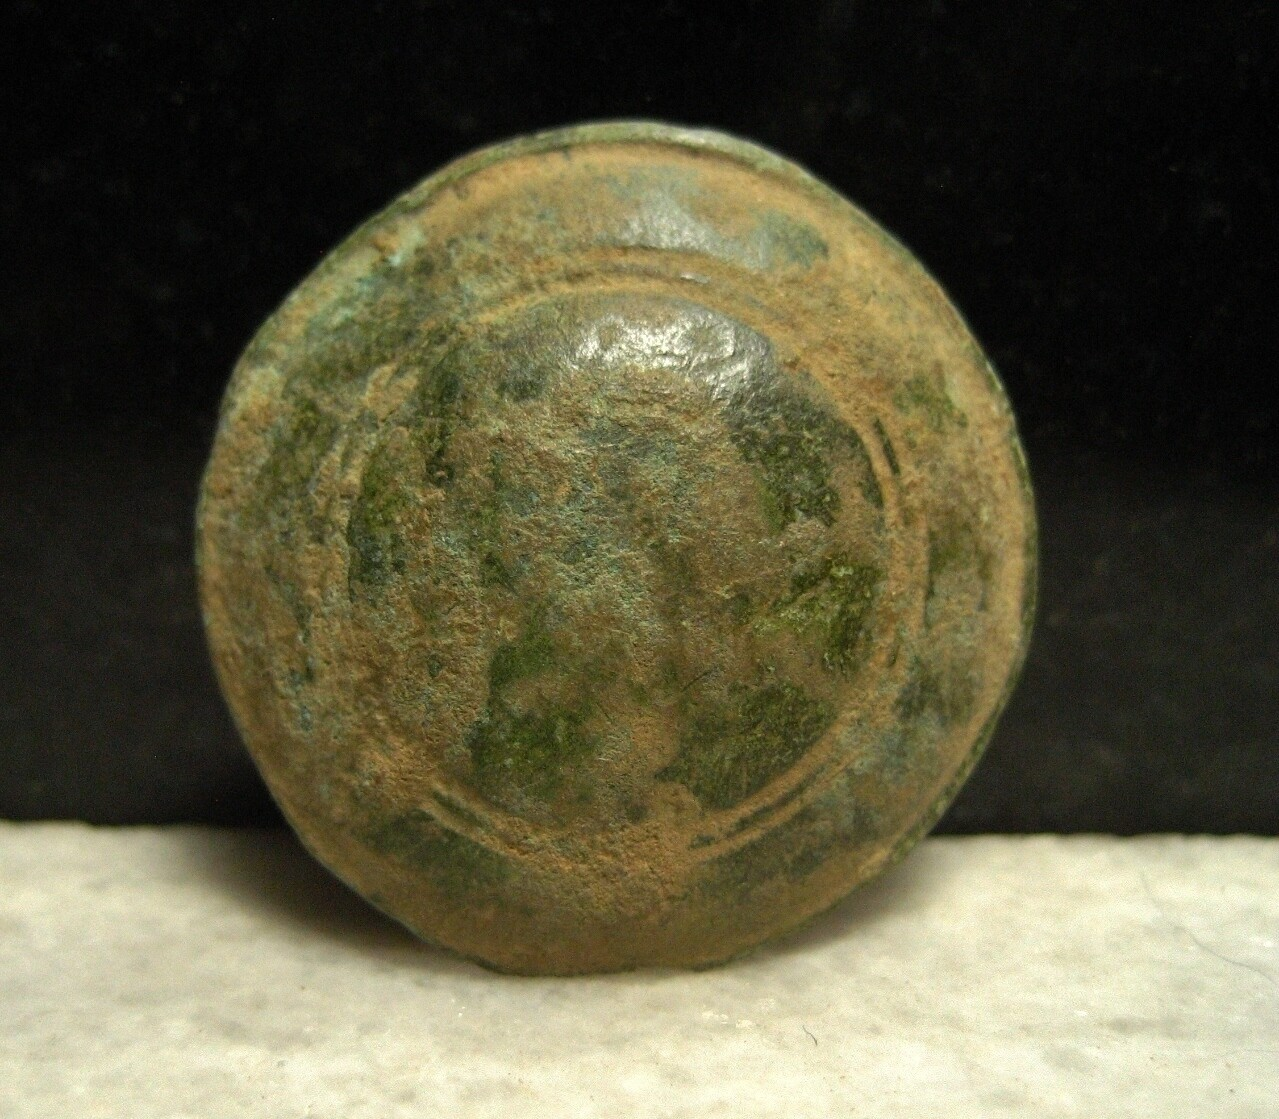 JUST ADDED ON 1/8 - THE BATTLE OF ANTIETAM / SMOKETOWN ROAD NEAR THE EAST WOODS - Brass Artifact - Unknown - Small Rosette or Leather Decoration? Button? found in the Early 1970s